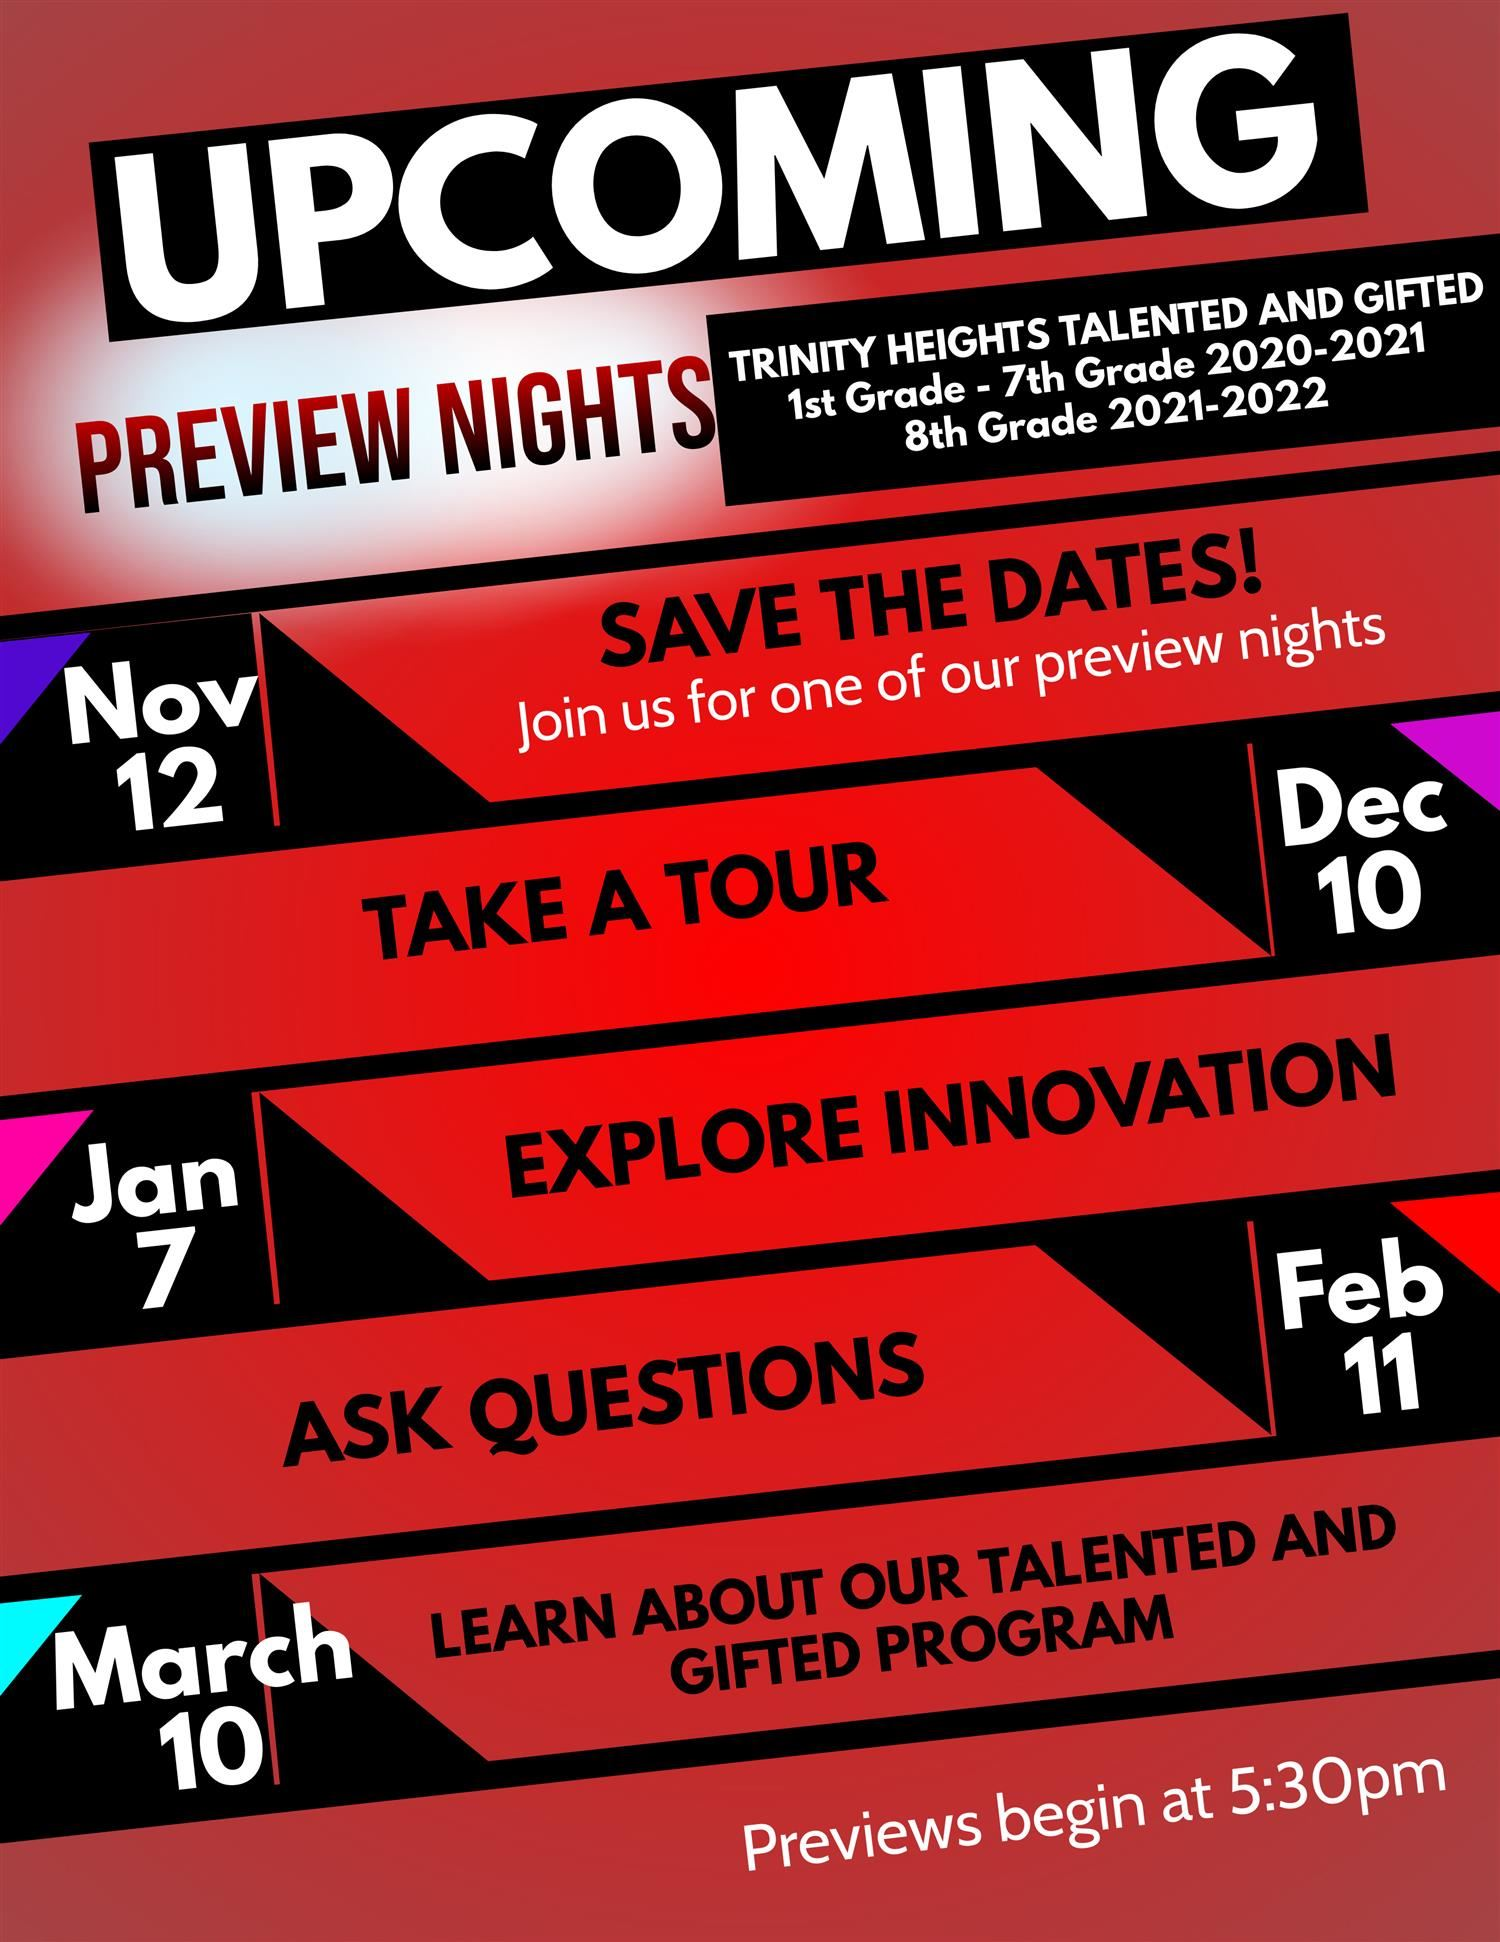 Join Us! Please mark your calendars for our upcoming preview nights!